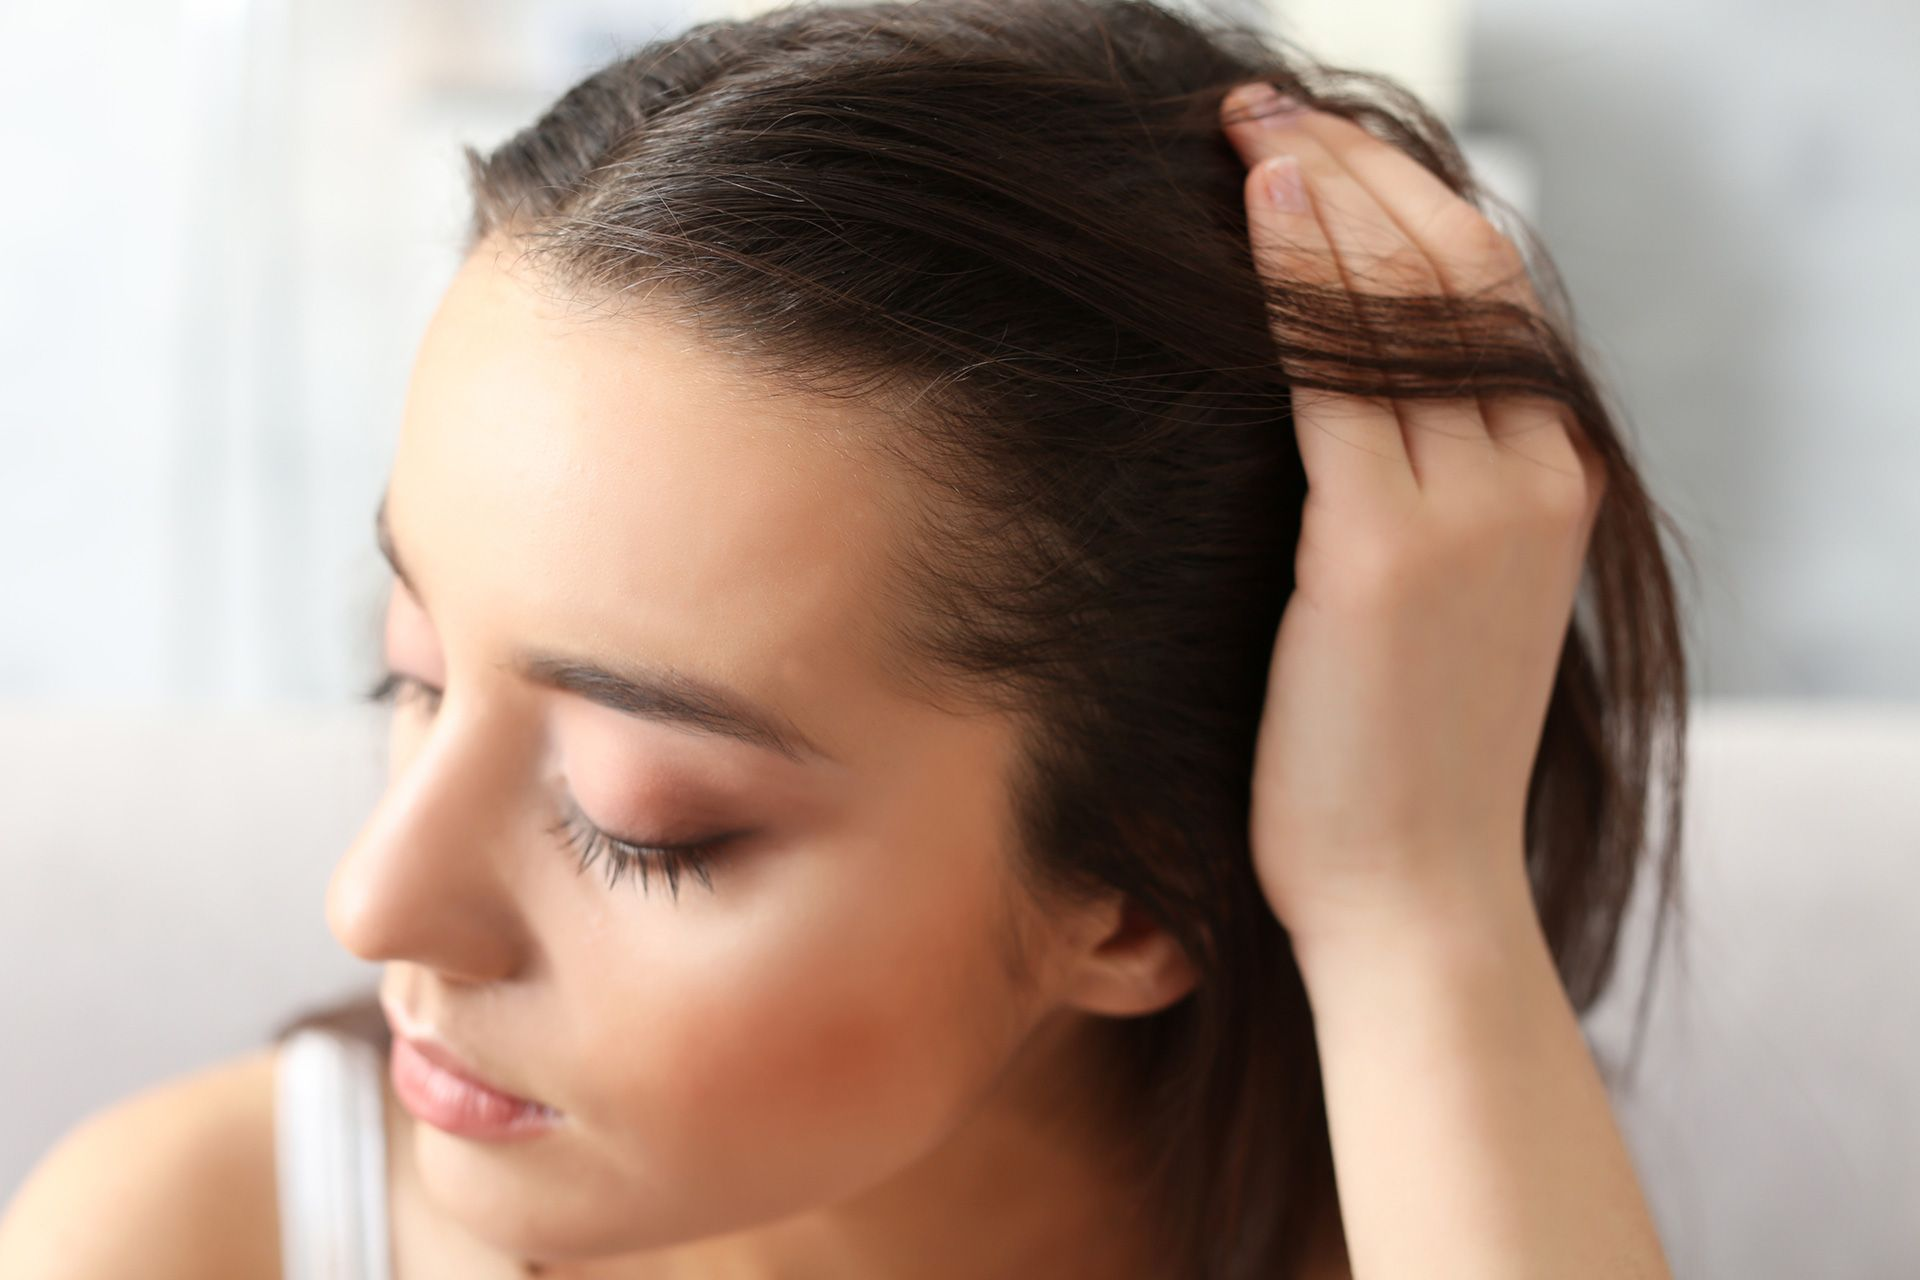 Medications That Can Cause Thinning Hair